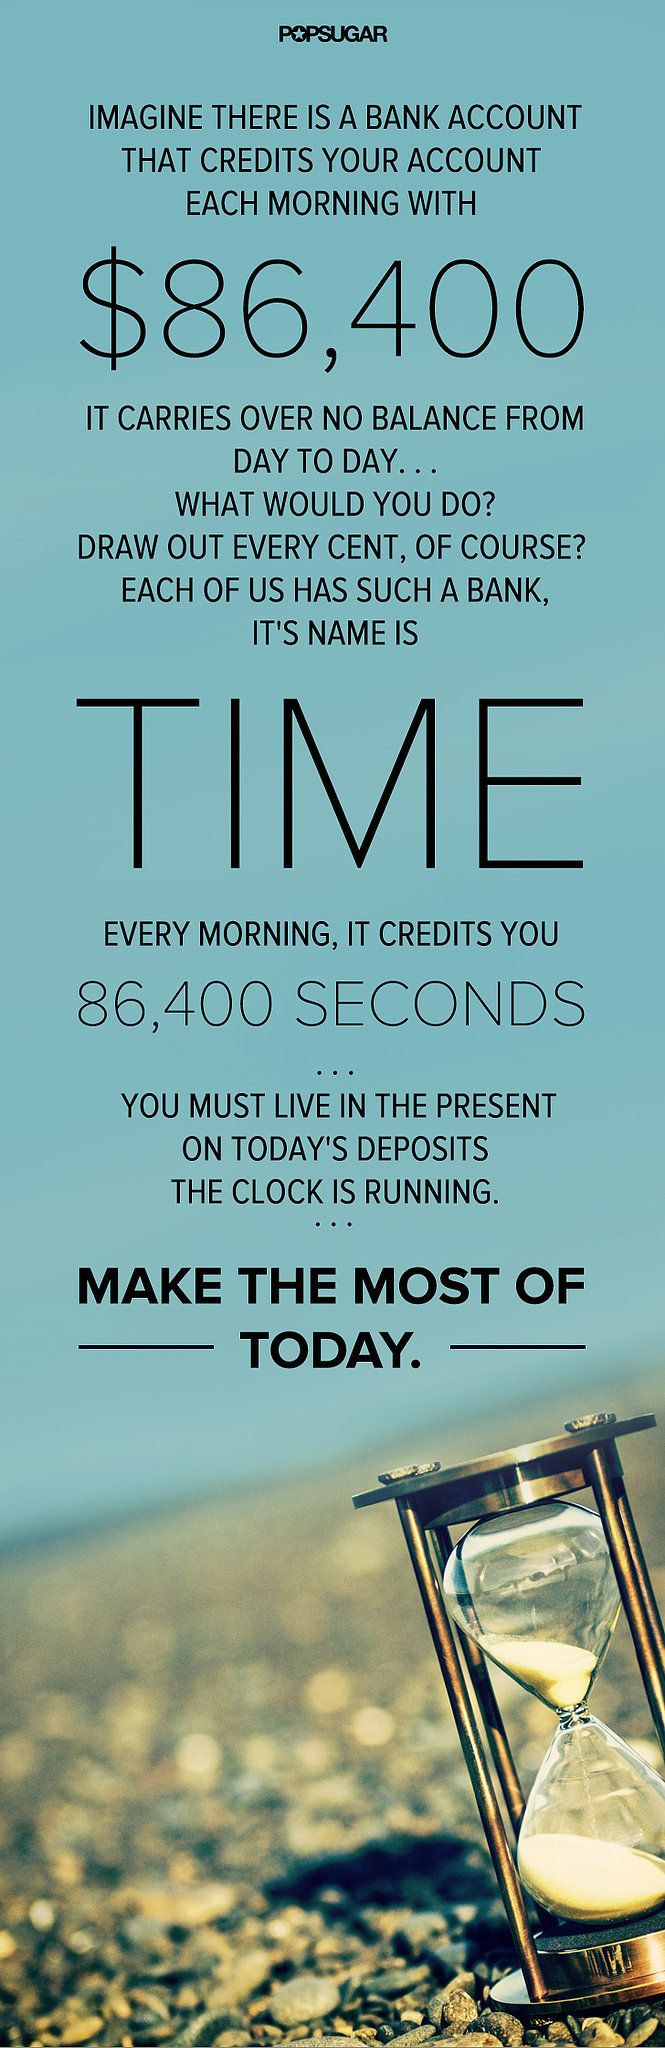 "Time Is Precious! ""Imagine there is a bank account that credits your account each morning with $86,400. It carries over no balance from day to day. What would you do? Draw out every cent, of course? Each of us has such a bank, its name is time. Every morning, it credits you 86,400 seconds. You must live in the present on today's deposits. Invest it so as to get from it the utmost in health, happiness, and health. The clock is running. Make the most of today."""